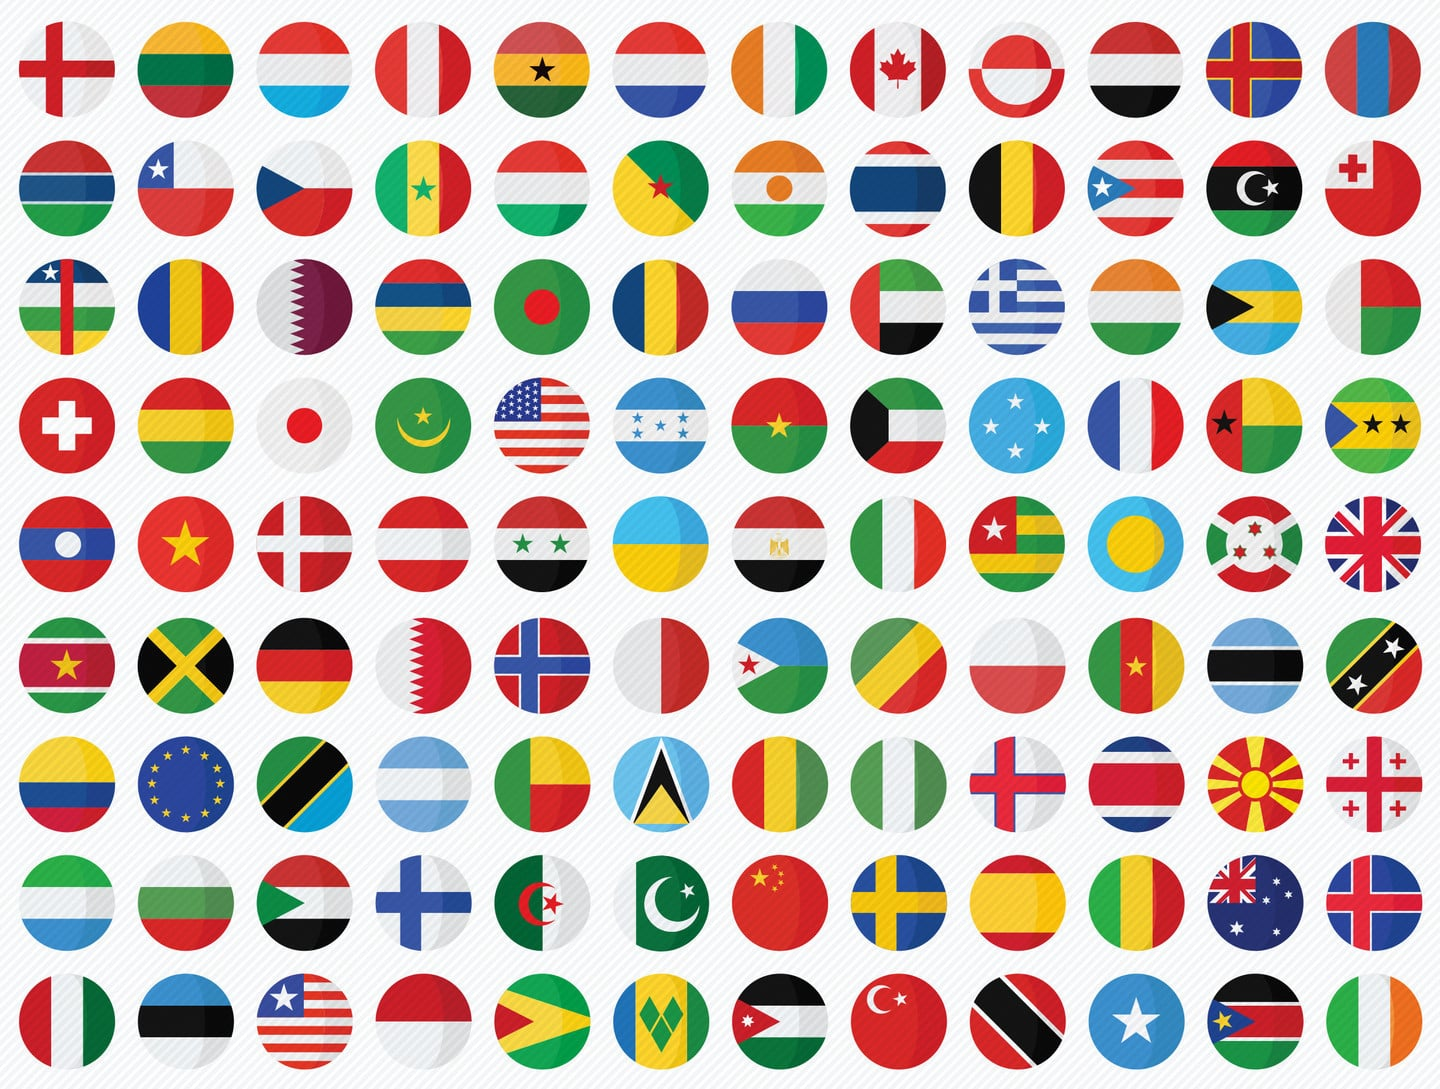 Change your App Store country flag icons